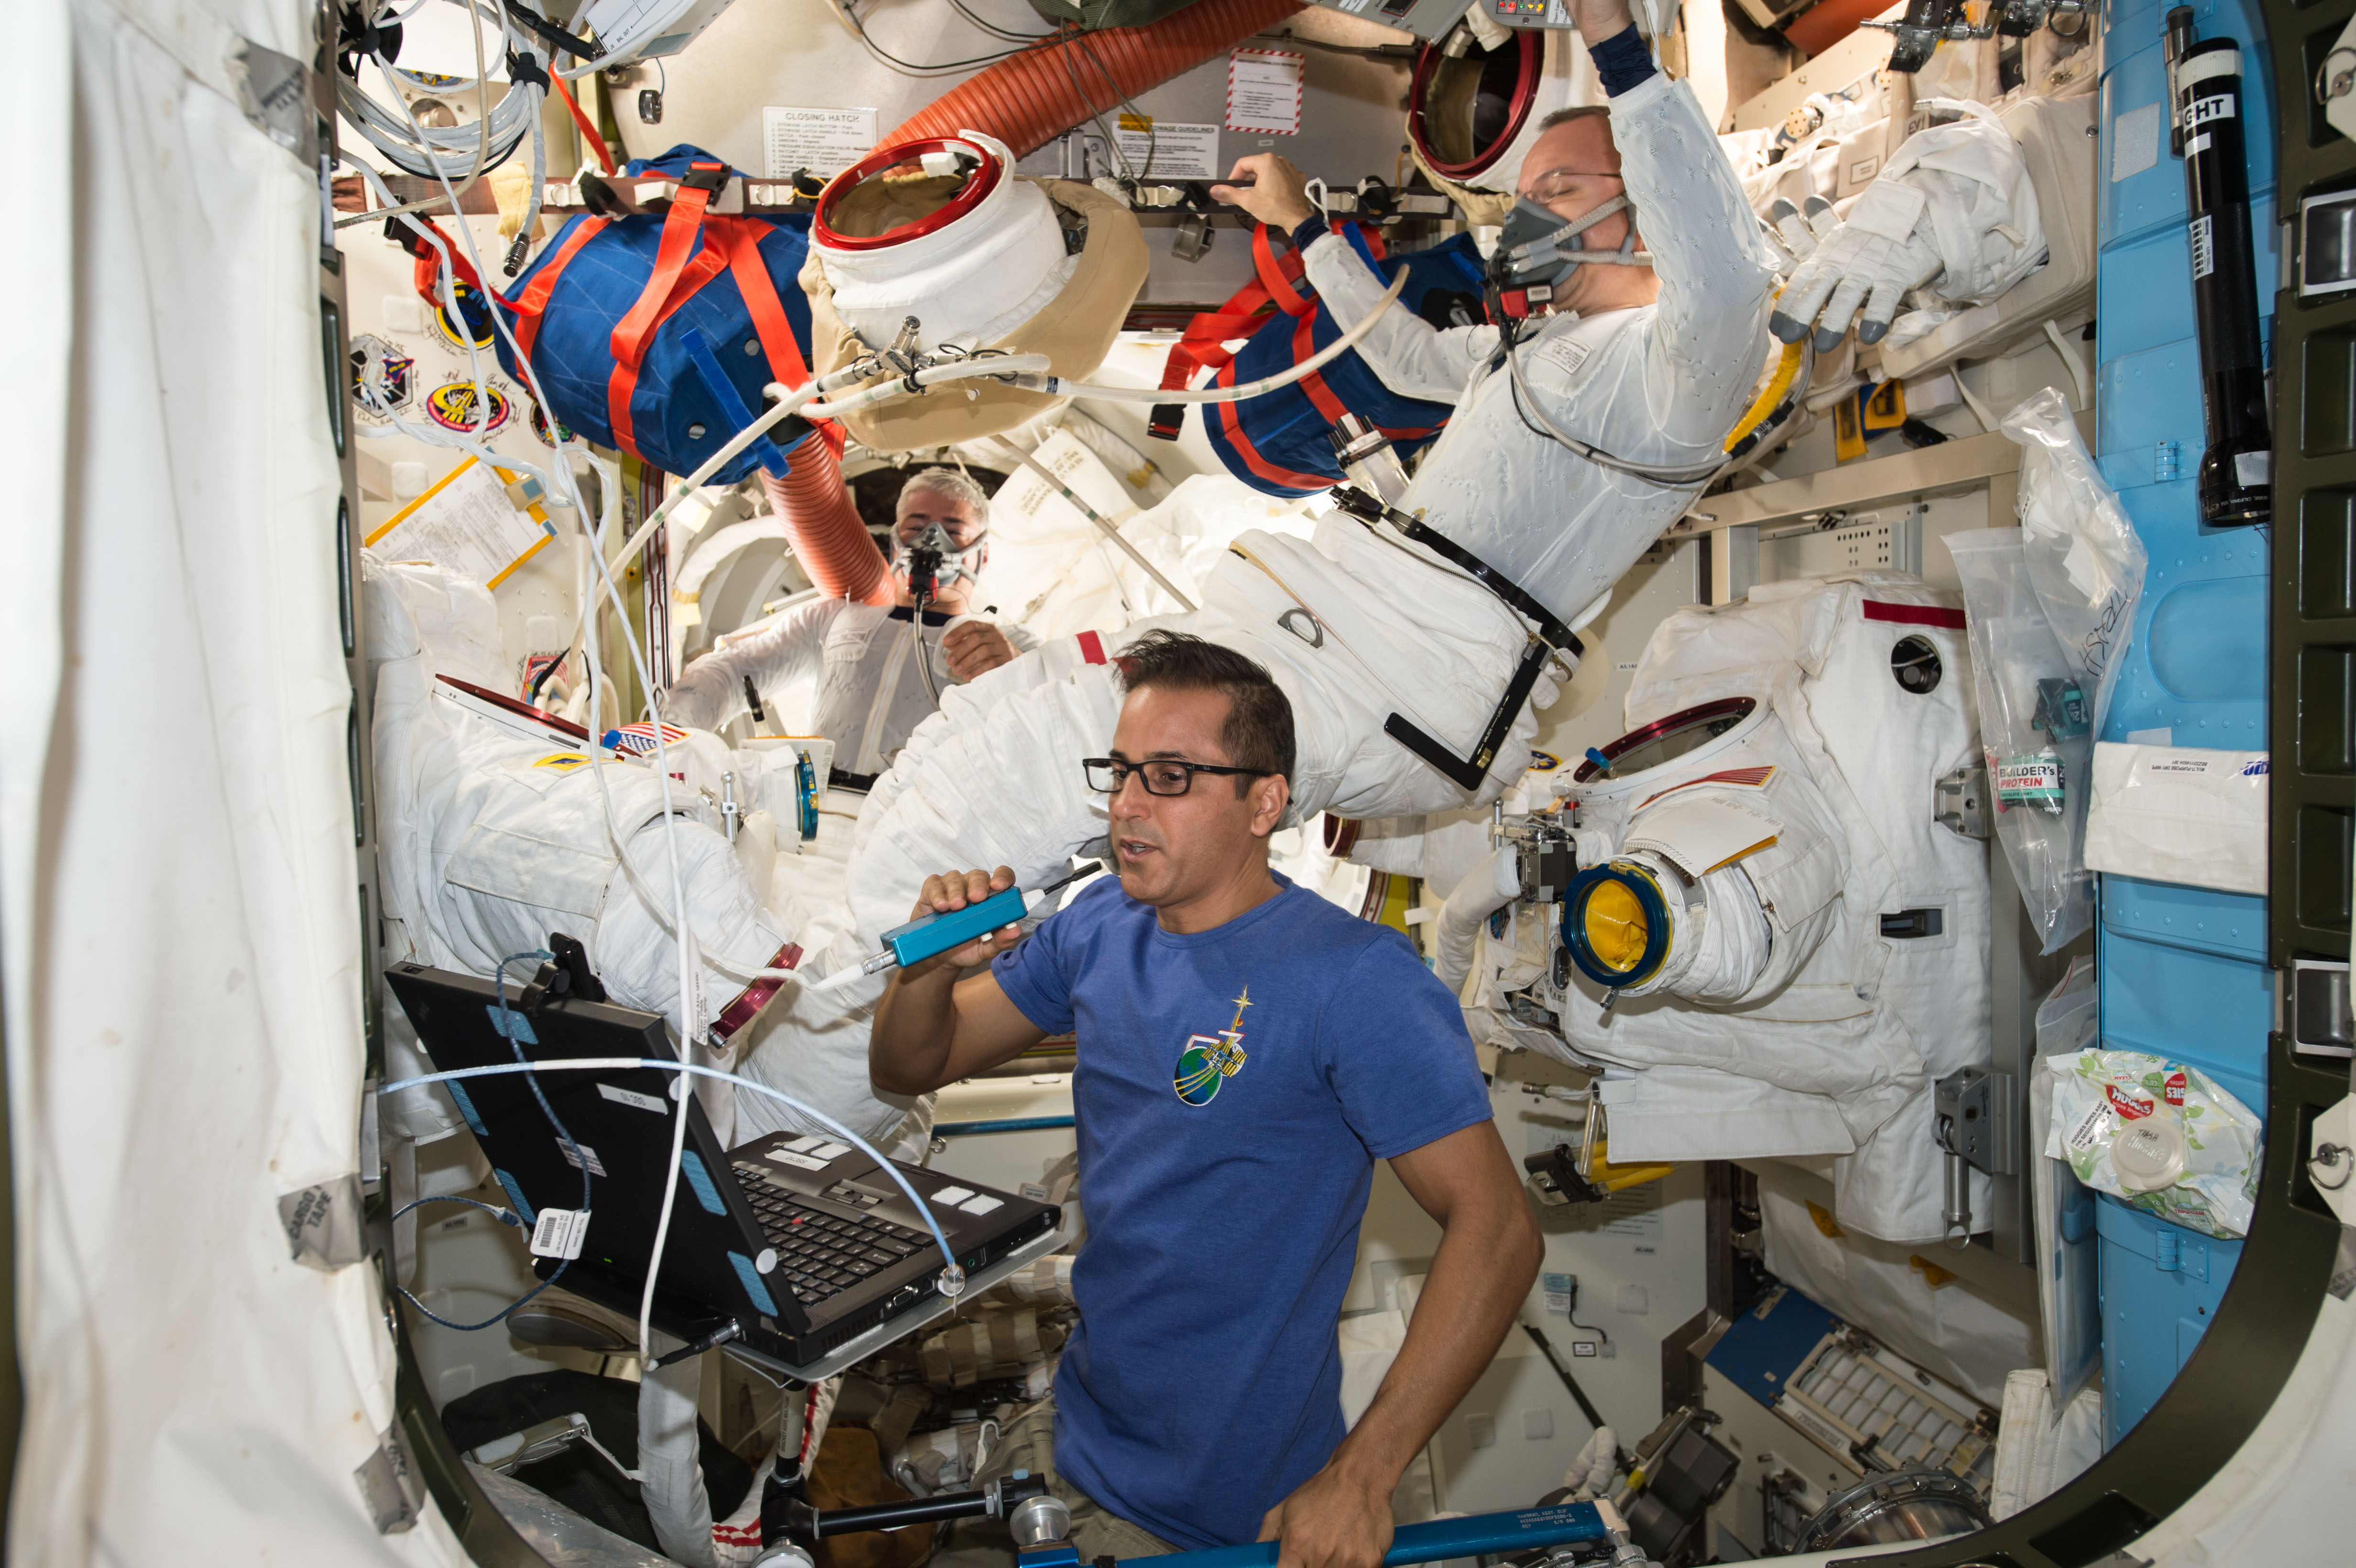 Astronaut Joe Acaba and spacewalkers